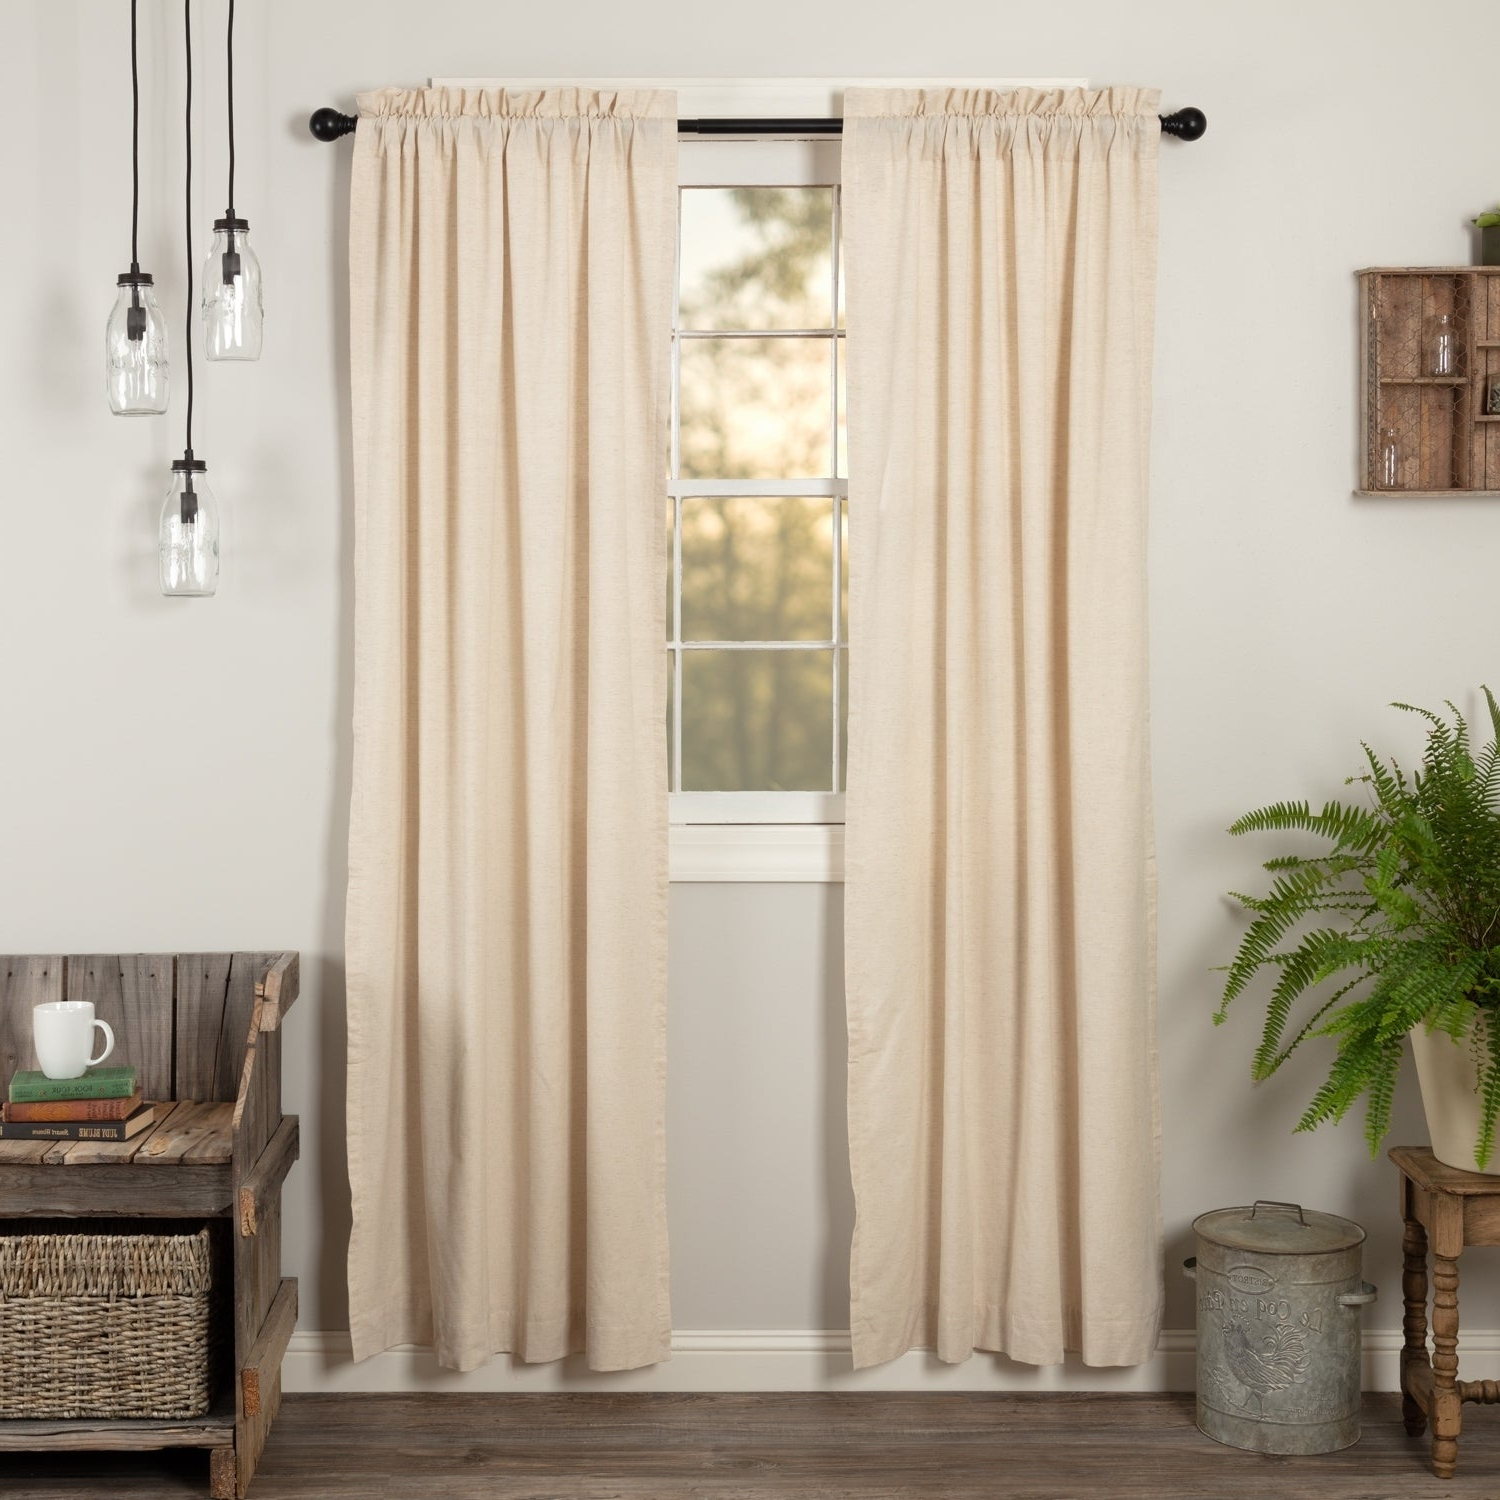 Most Current Details About Farmhouse Curtains Vhc Simple Life Flax Panel Pair Rod Regarding Rod Pocket Cotton Linen Blend Solid Color Flax Kitchen Curtains (View 18 of 20)